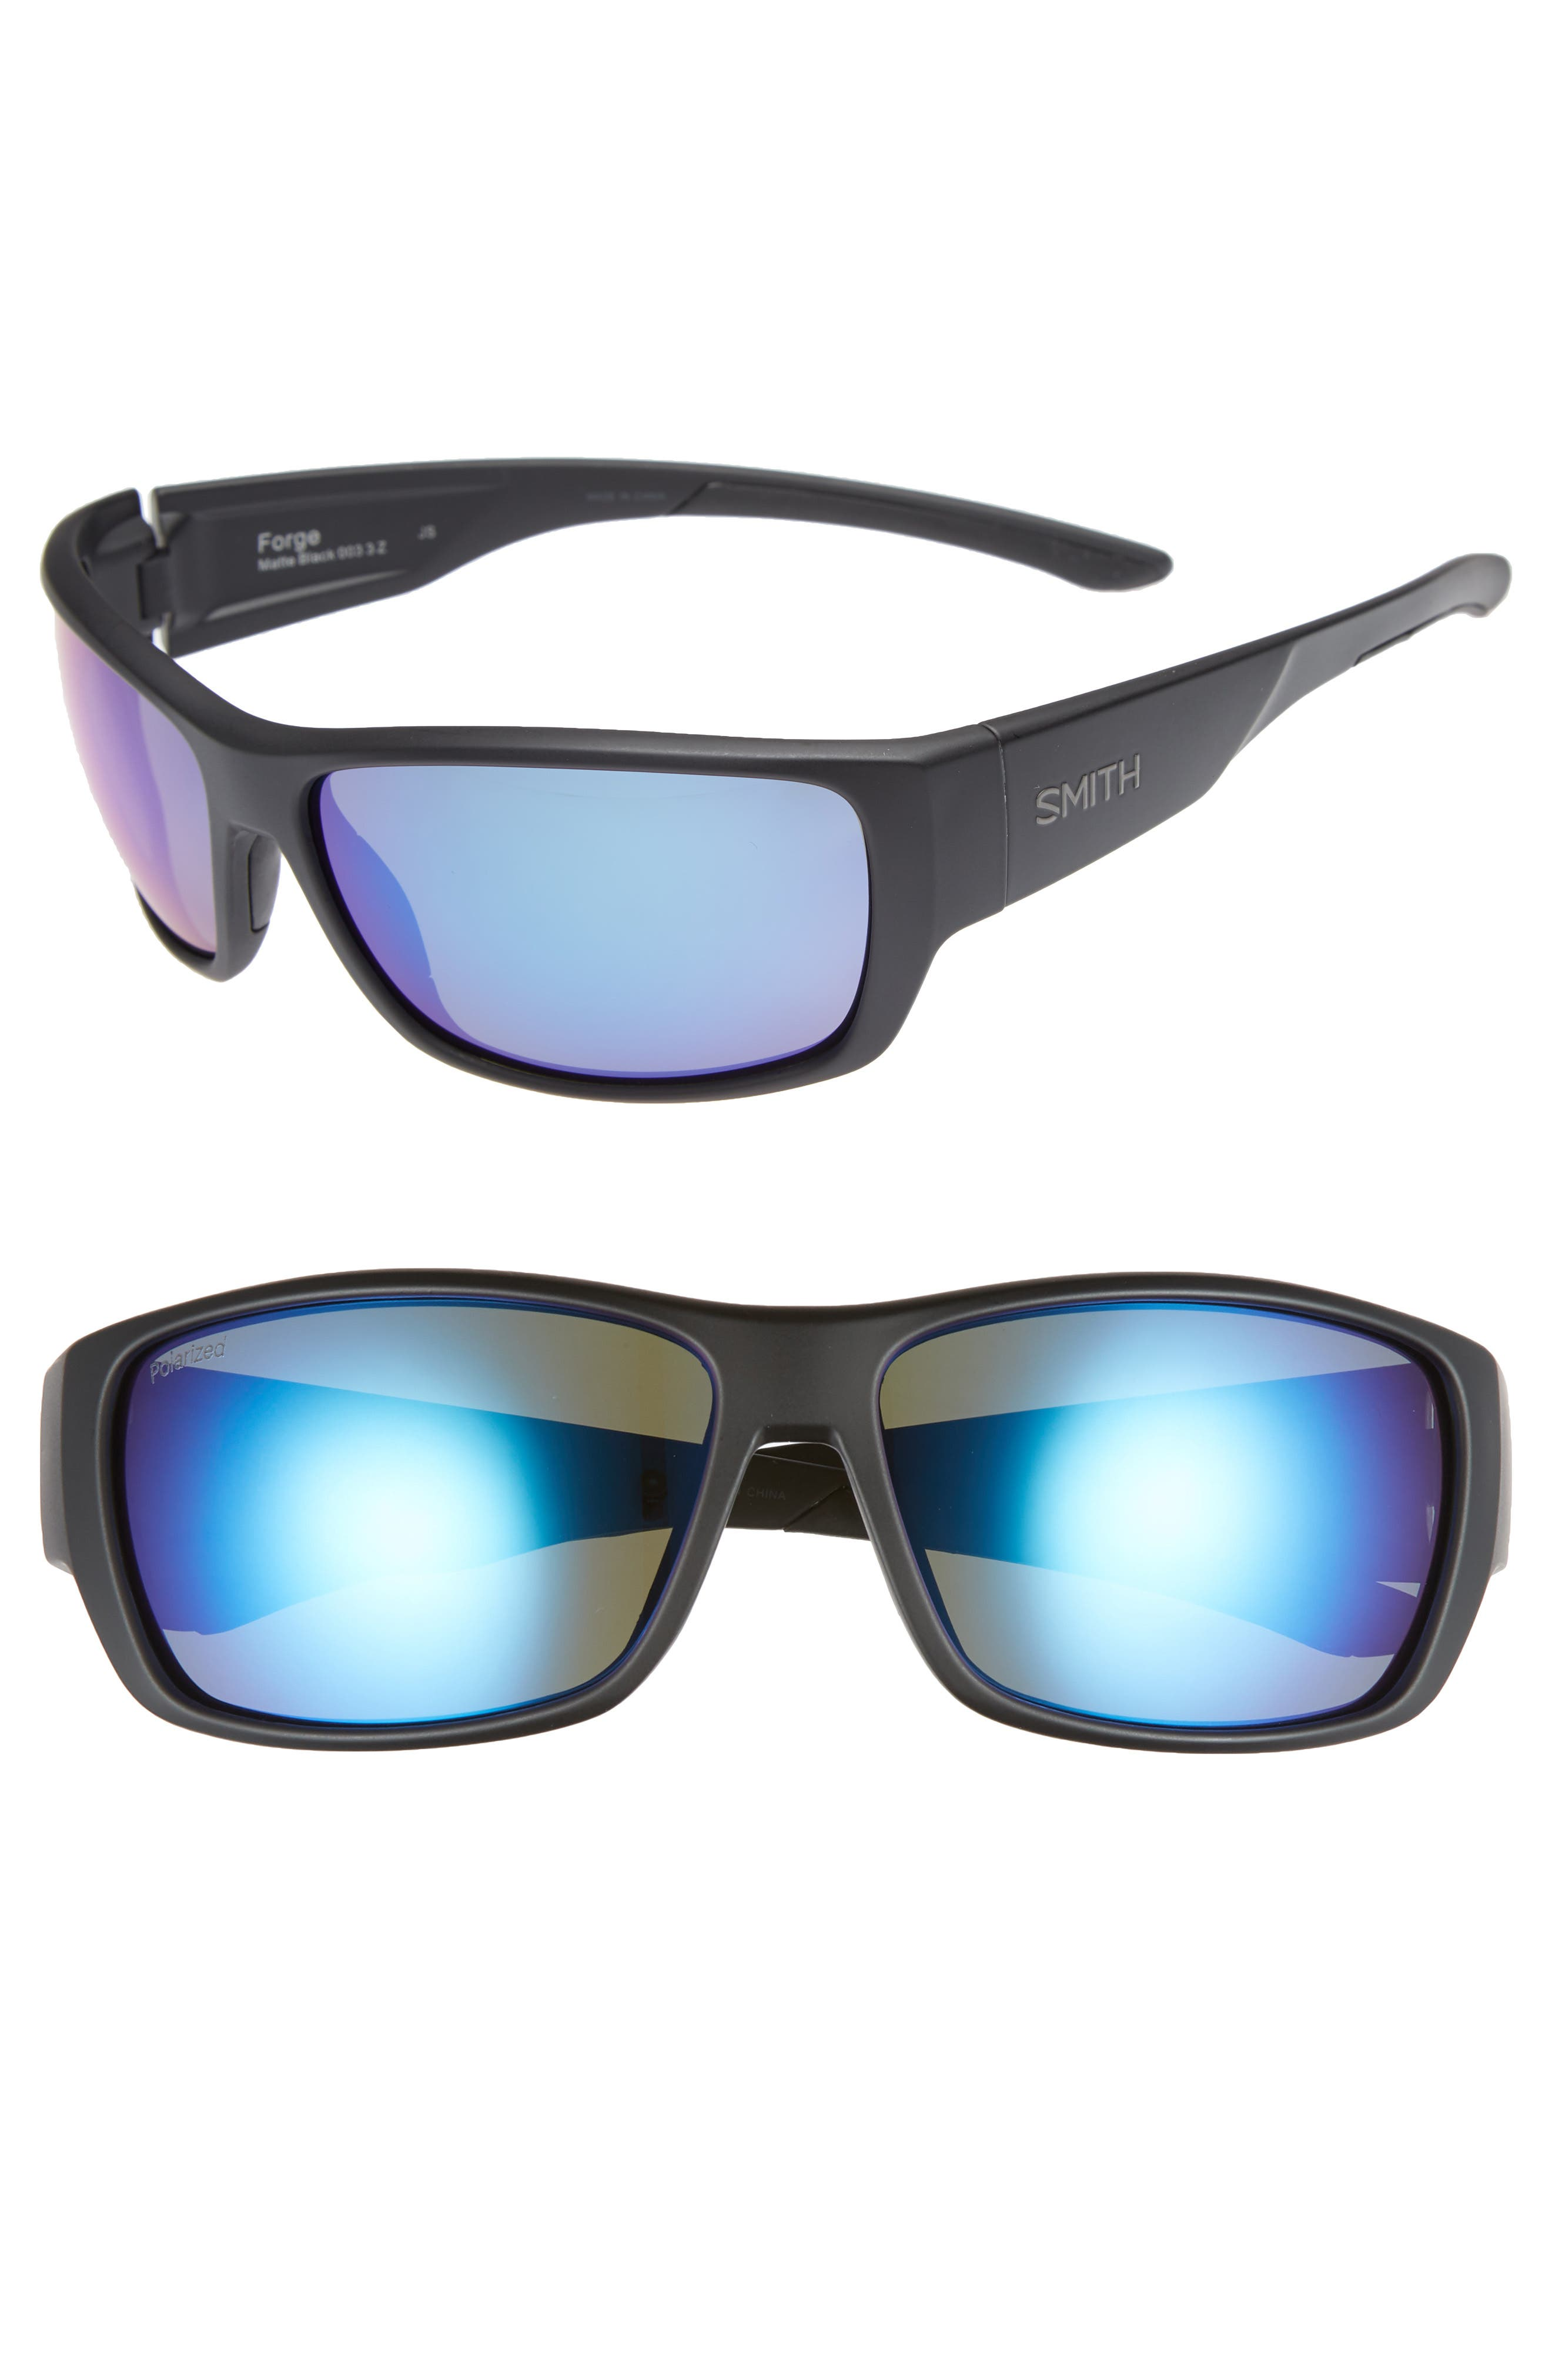 SMITH FORGE 61MM POLARIZED SUNGLASSES - MATTE BLACK/ BLUE MIRROR